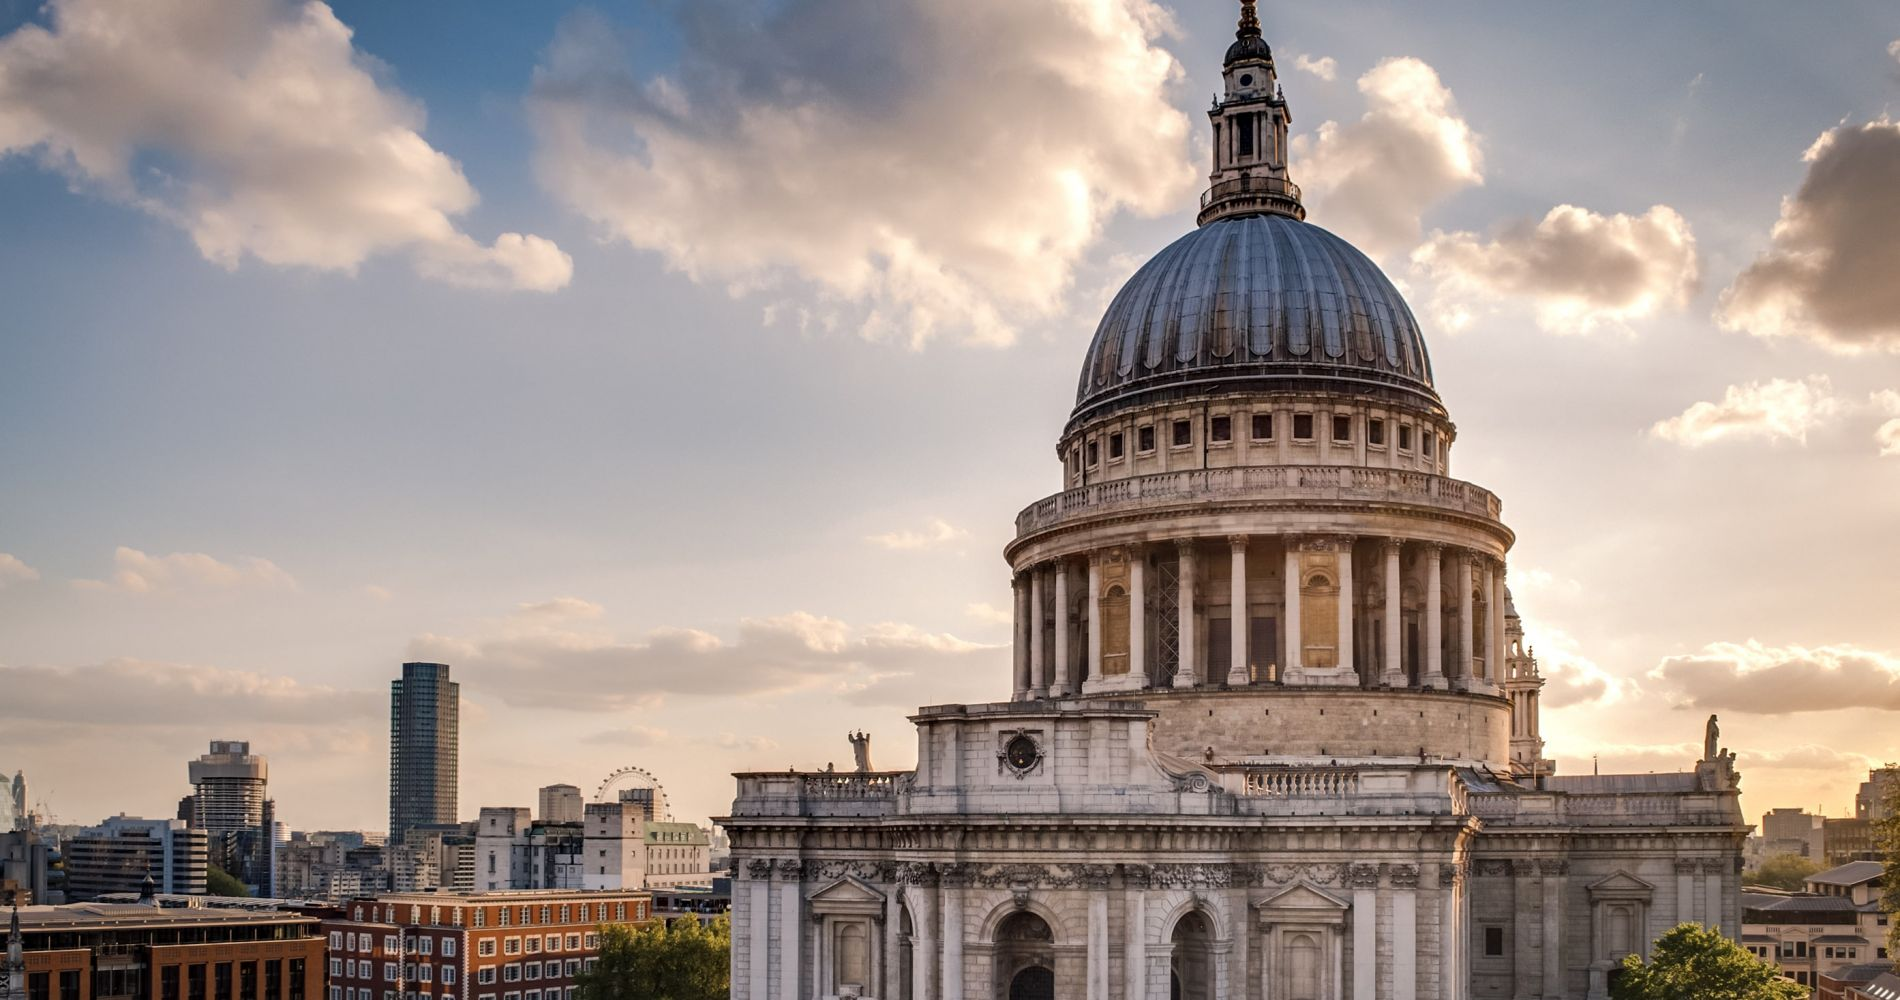 Visit London with St Paul's Cathedral for Two